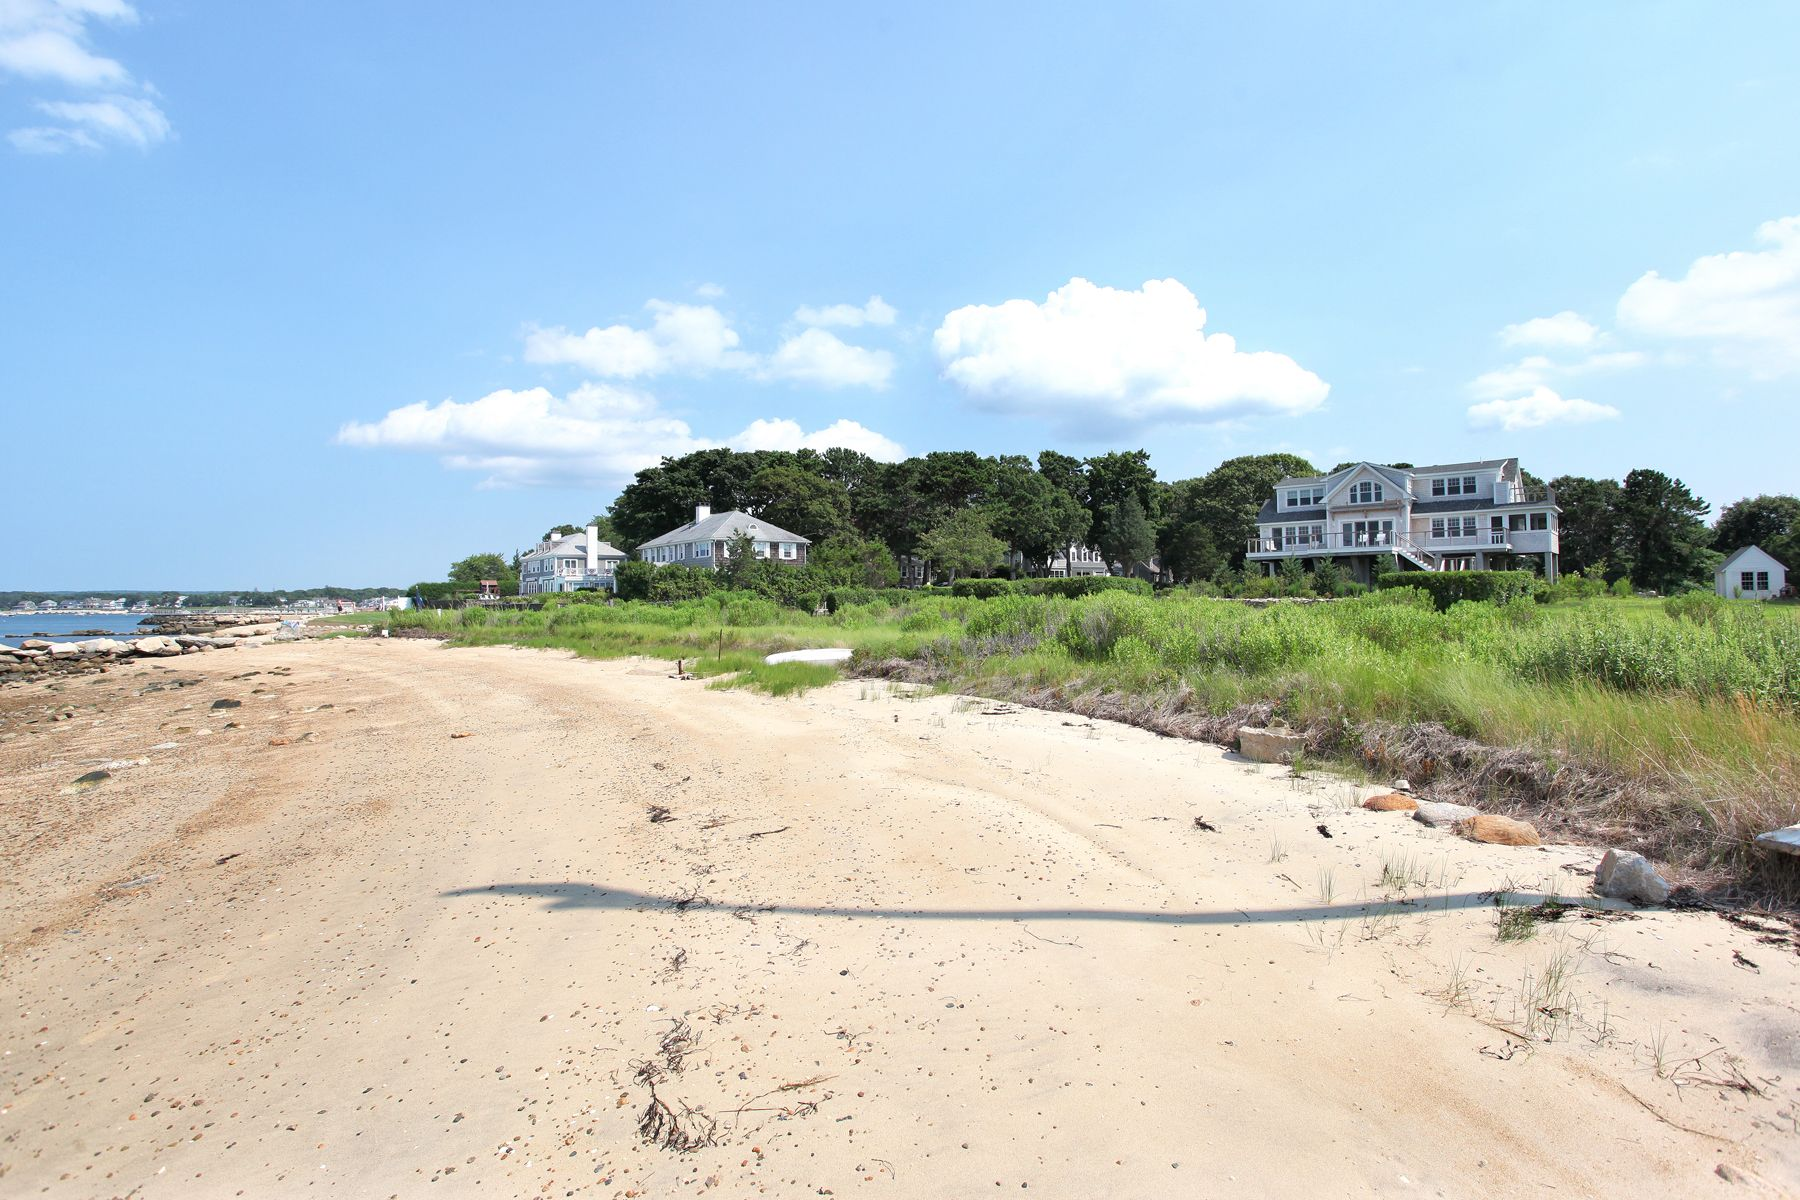 Single Family Homes for Sale at 27 Beverly Road, Pocasset 27 Beverly Road Pocasset, Massachusetts 02559 United States